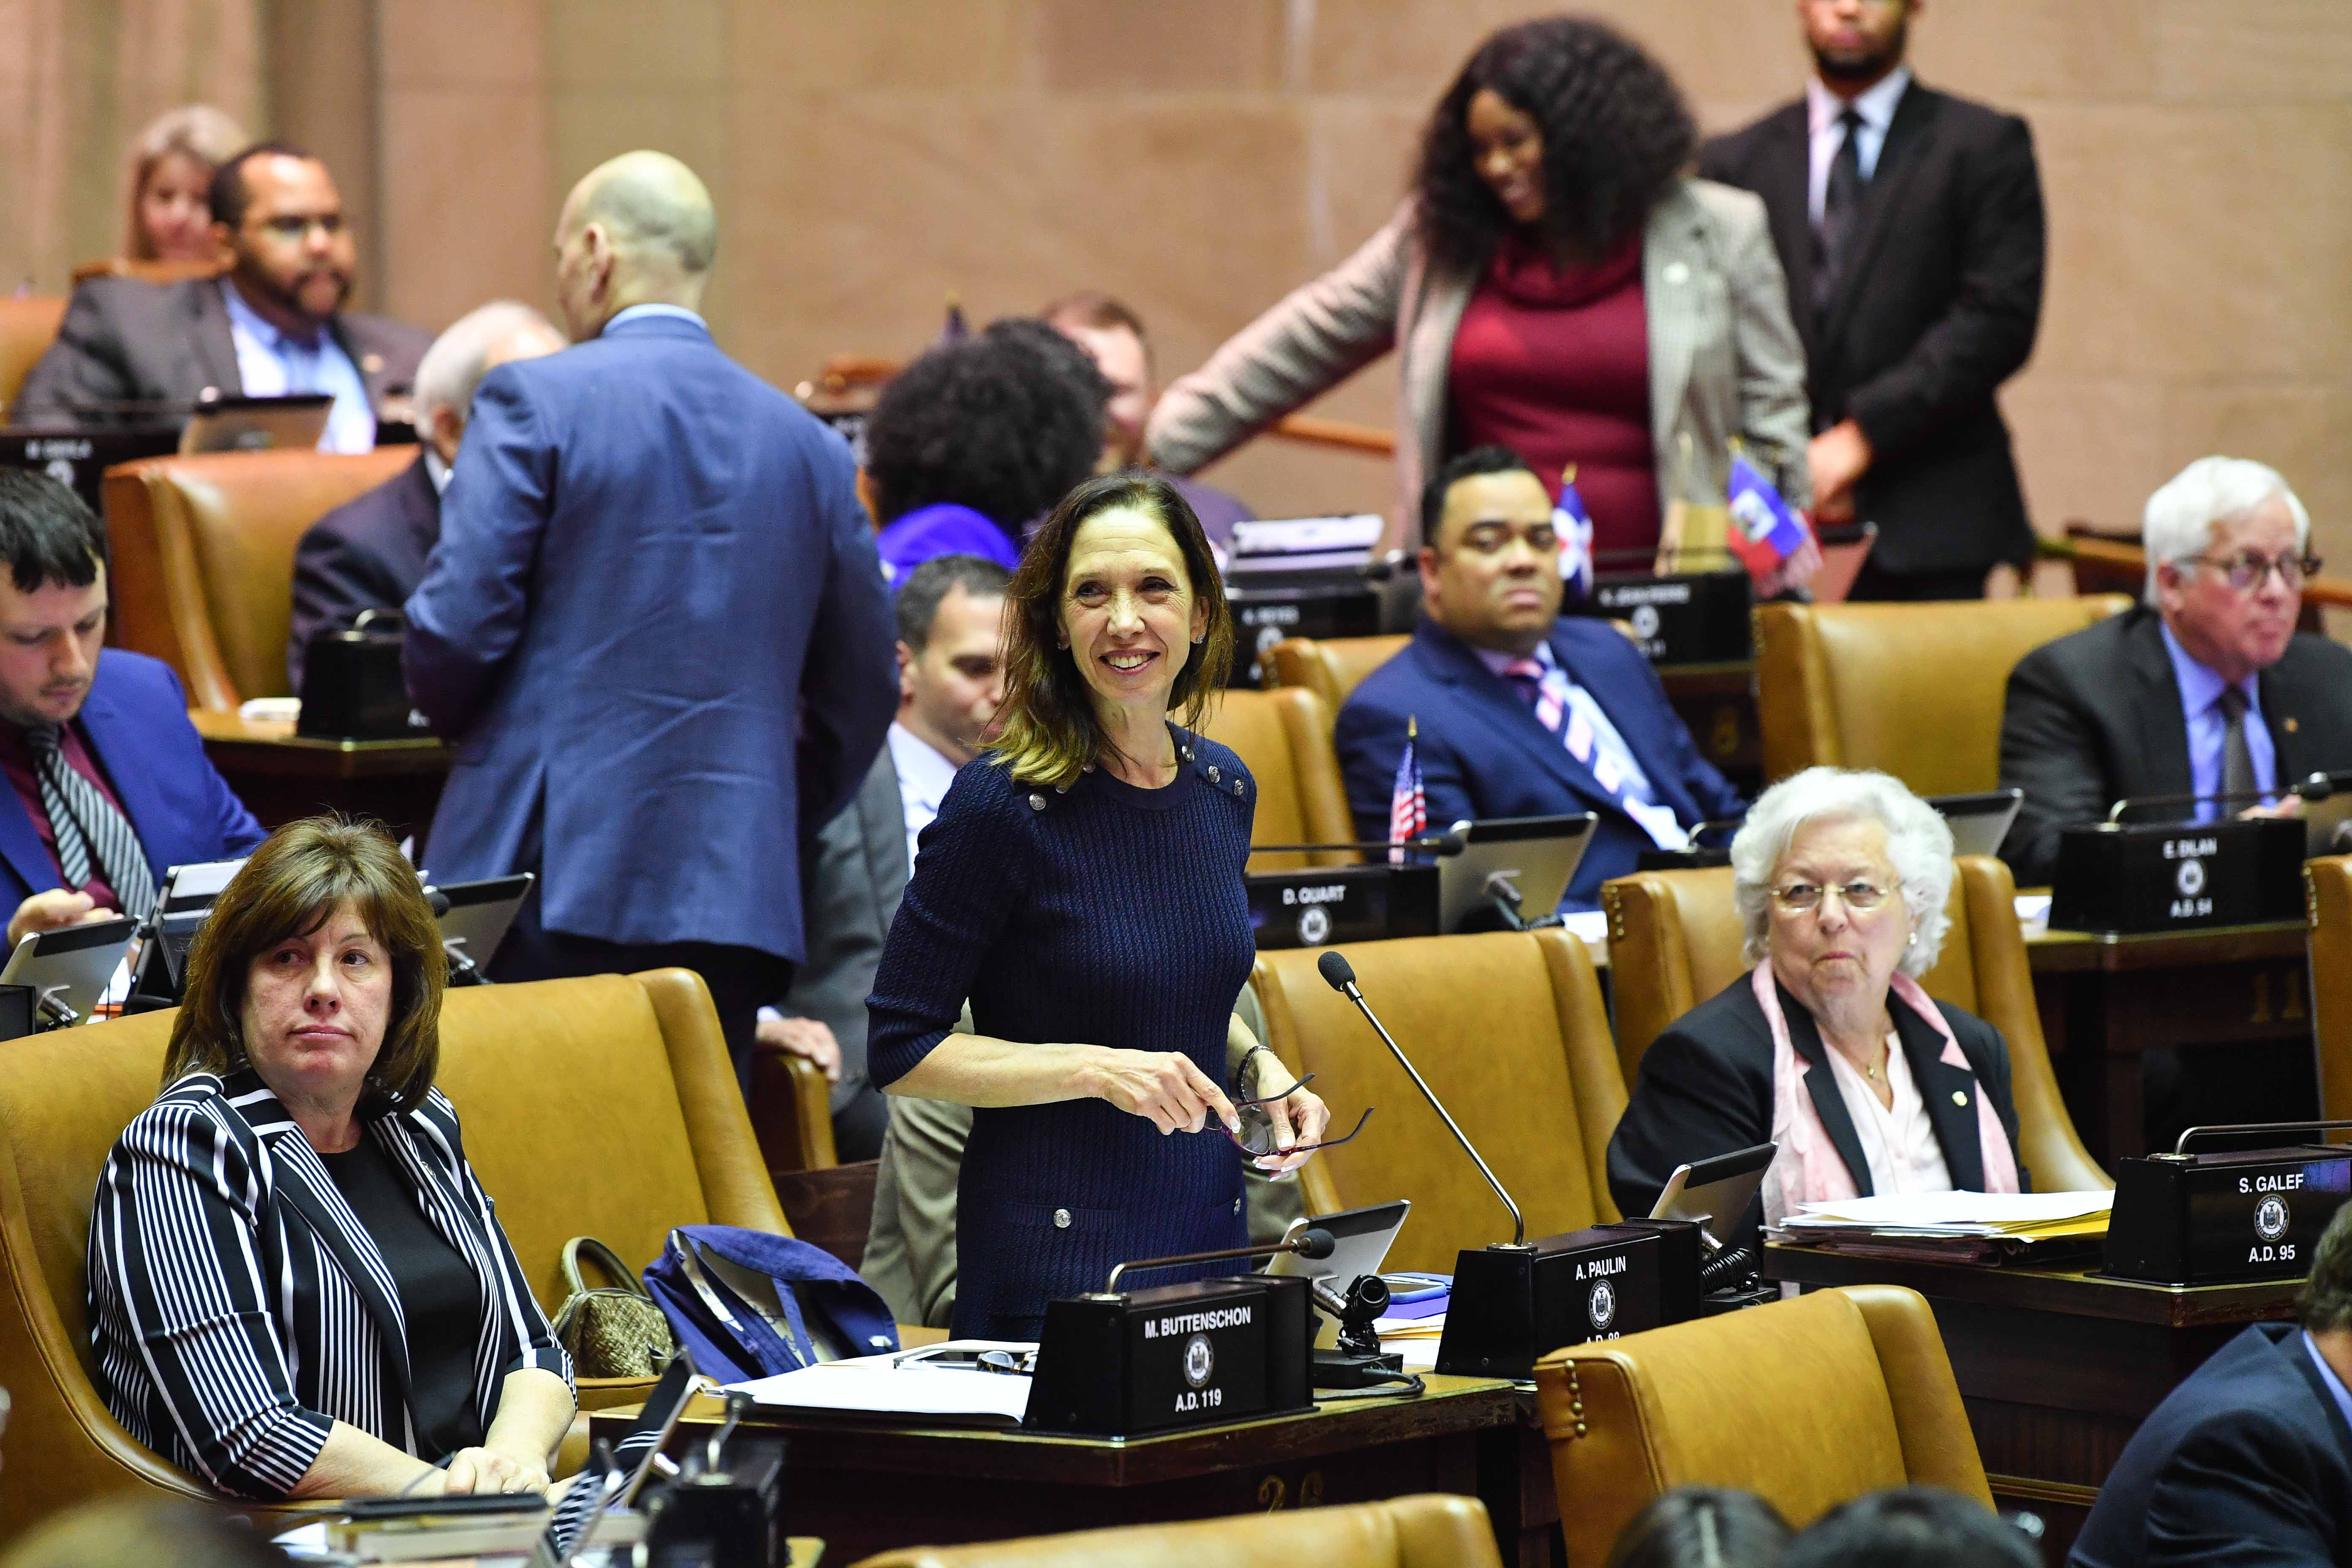 Amy Paulin during a debate on the floor of the New York State Assembly.